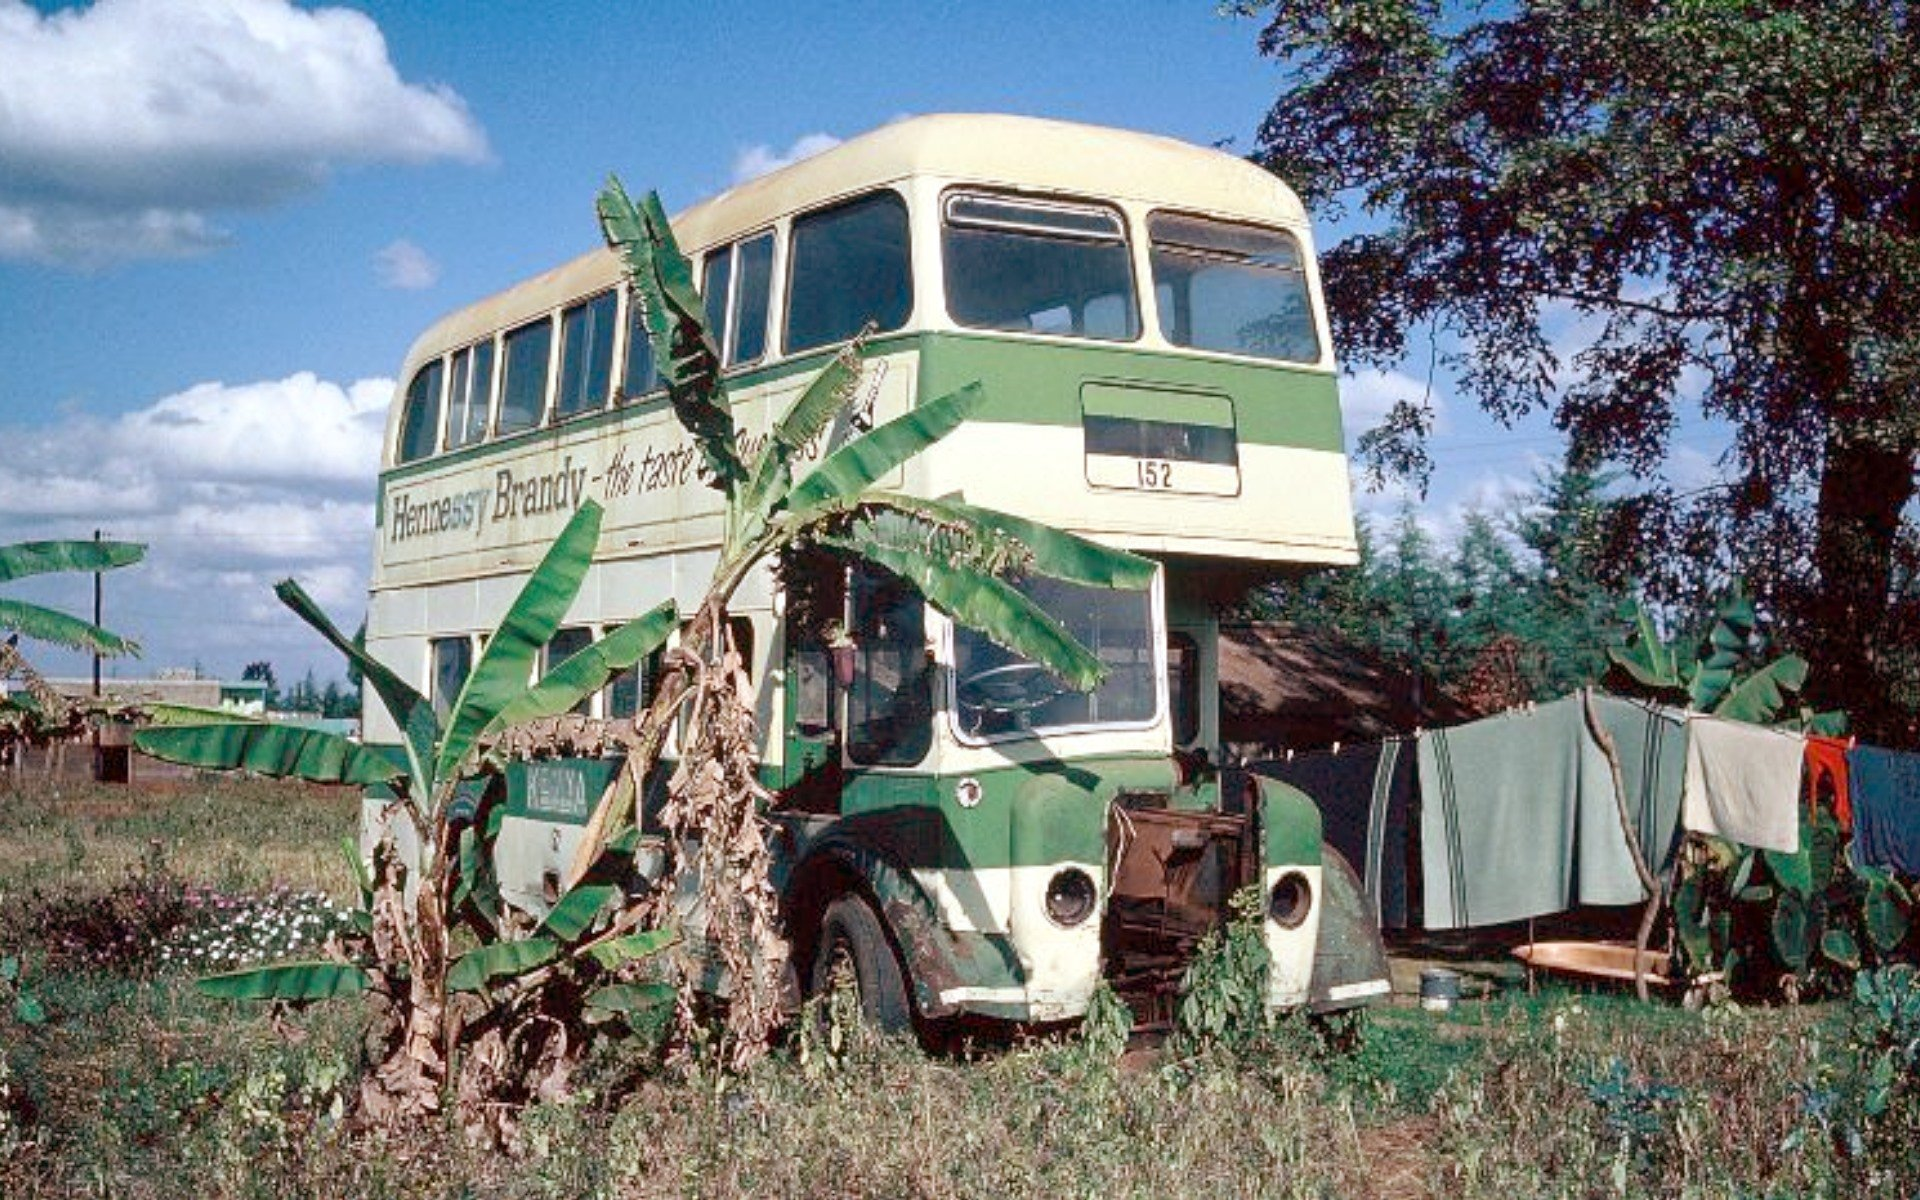 This Kenya Bus Services No.152, seen here in 1973 was a Guy Arab IV model with a Park Royal 70-seat body. The bus was delivered to Nairobi in December 1956 with local registration number KFJ 176. Photo courtesy of Vic Brumby.